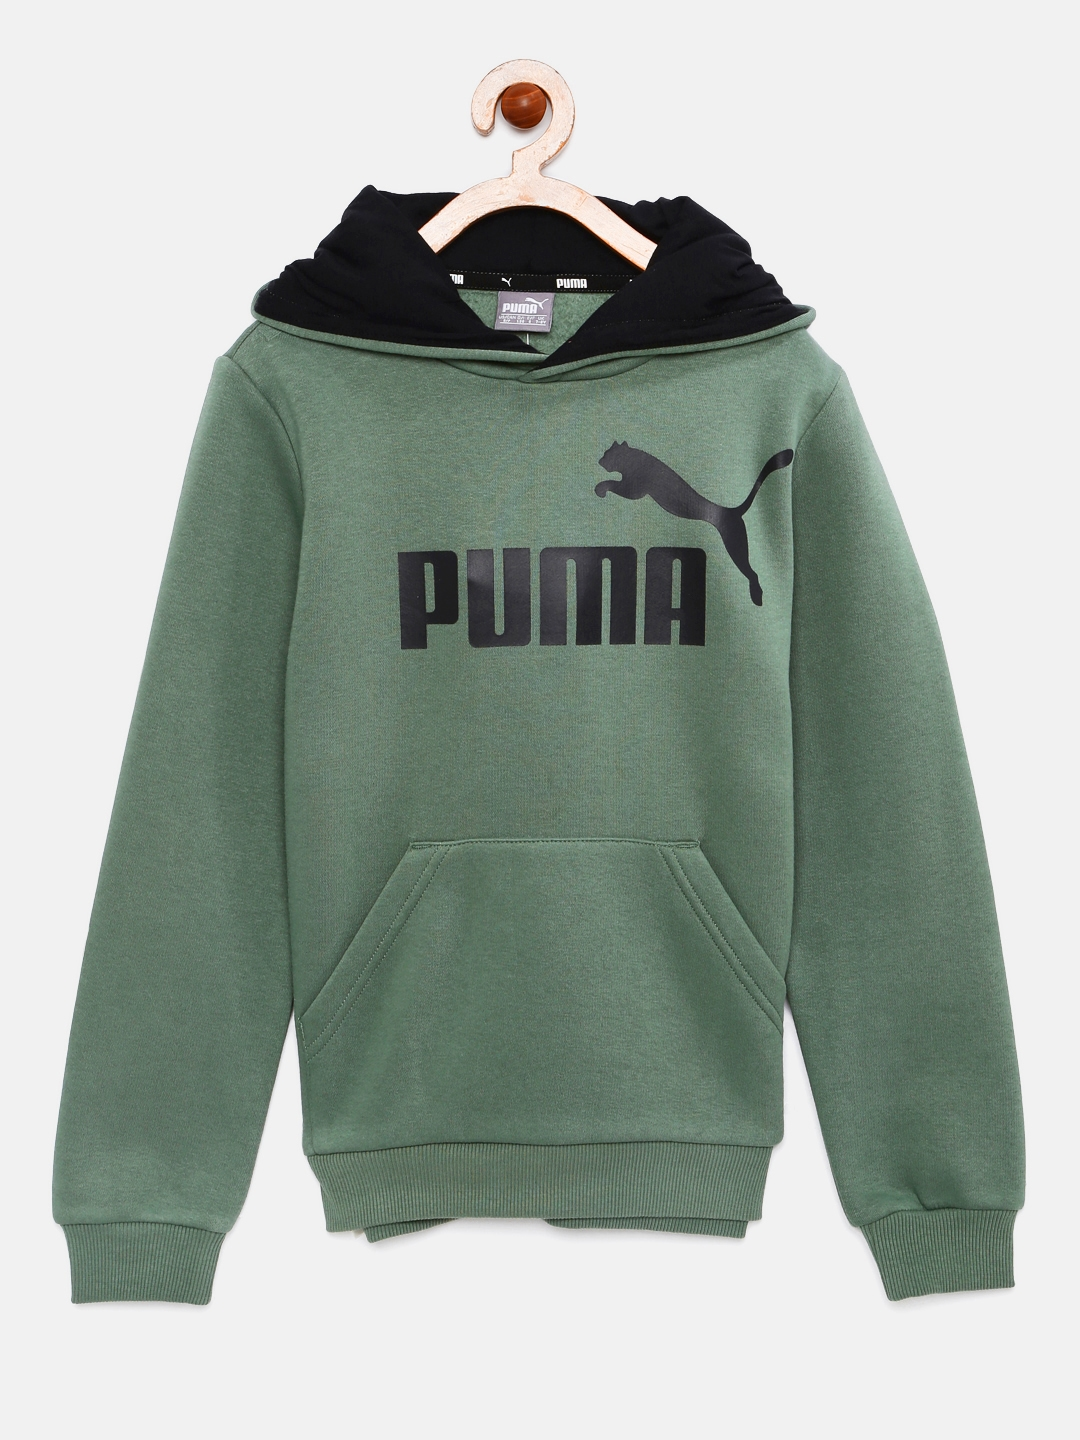 52d404111 Buy Puma Boys Olive Green Printed Hooded Sweatshirt - Sweatshirts ...